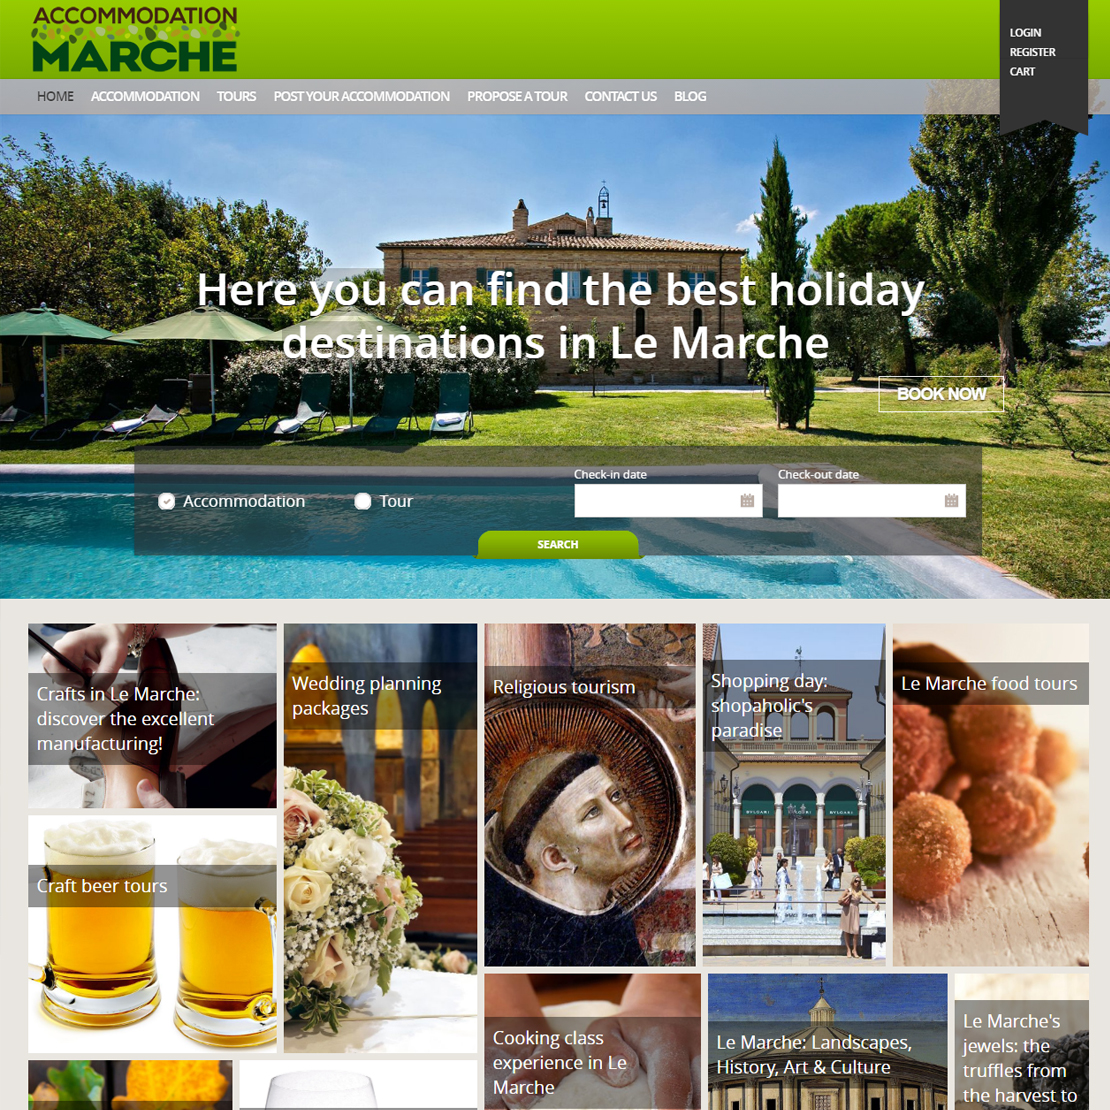 accommodationmarche.com